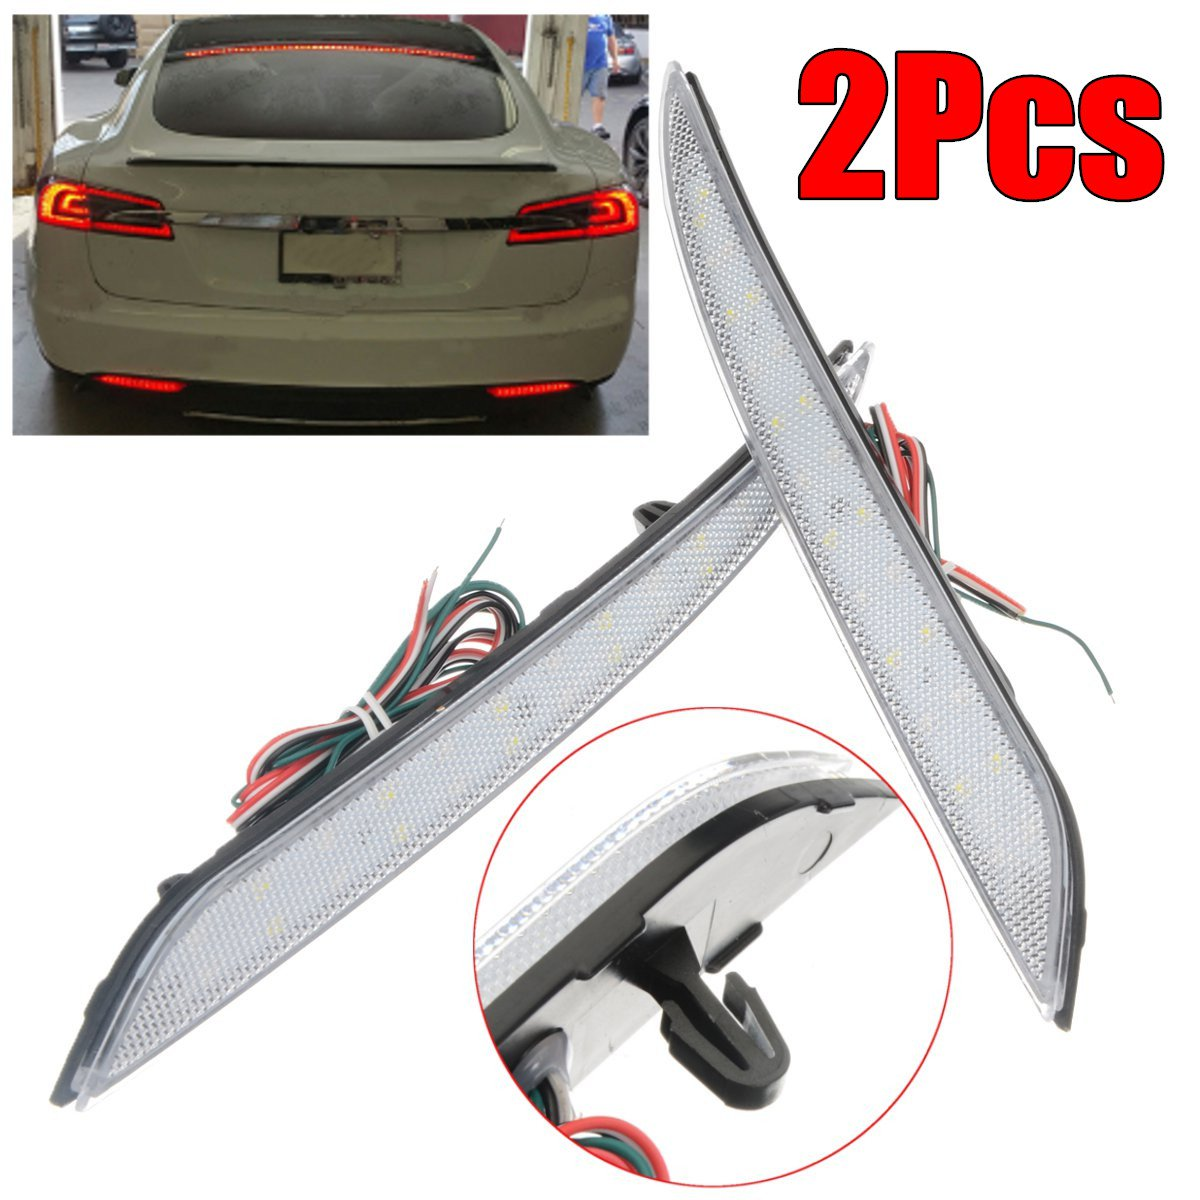 2Pcs Car Rear Fog Lamp LED Rear Bumper Brake Light For TESLA Model S 2012